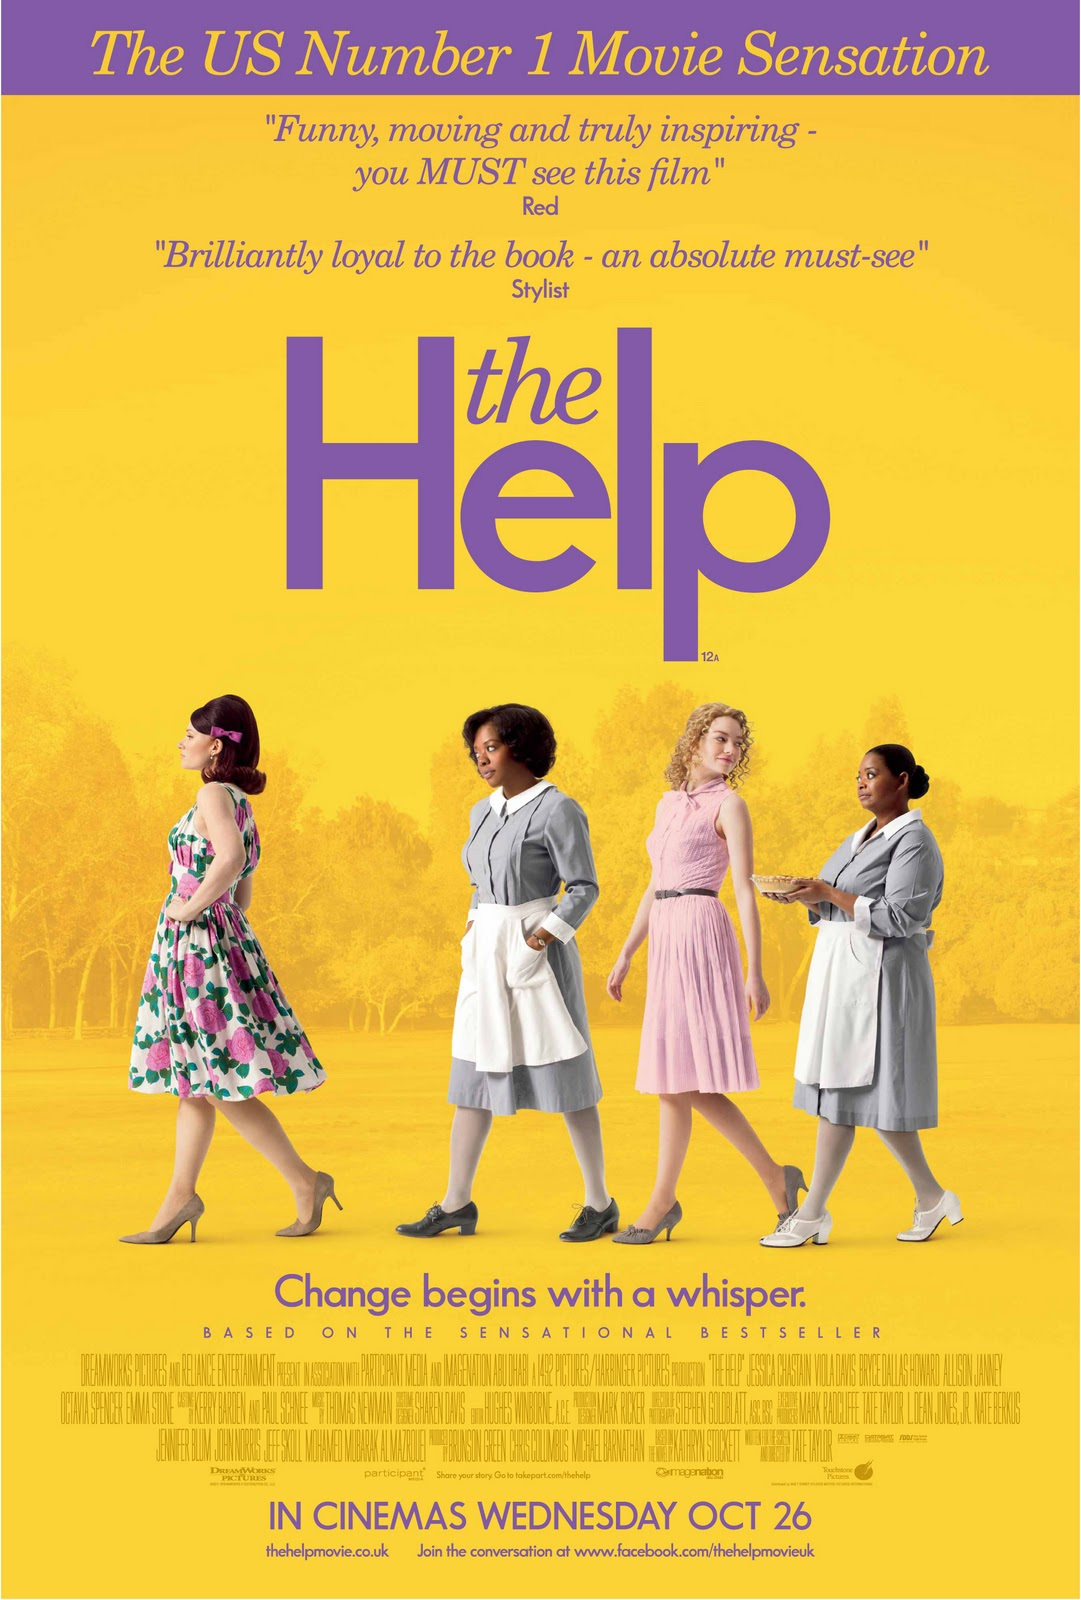 the help kathryn stockett essays about love fourth grader pro gay marriage essay goes viral ny daily news a reddit user fourth grader acircmiddot thesis statement for the help